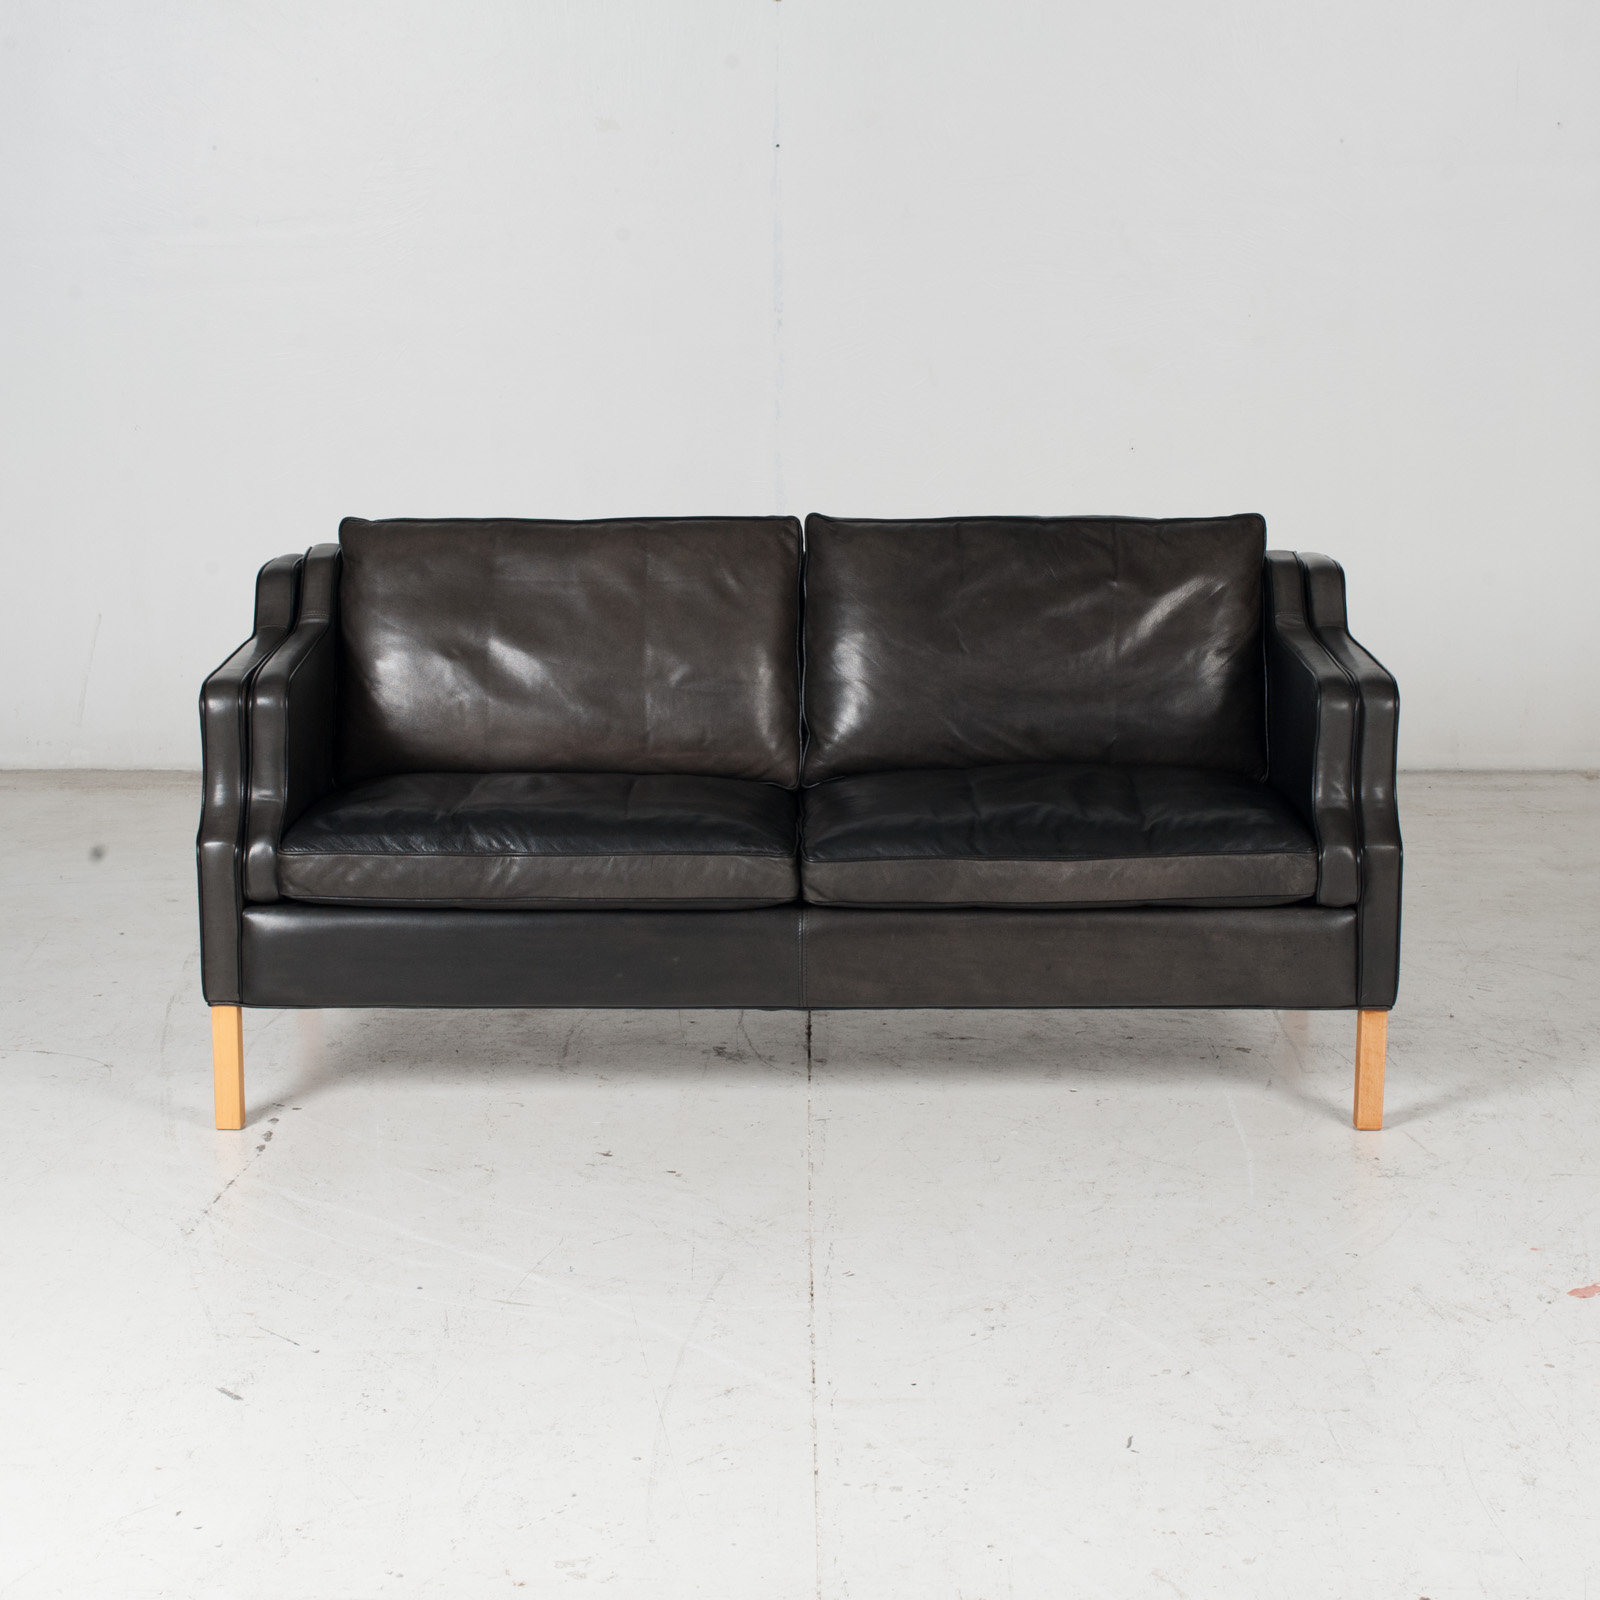 2 Seat Sofa By Stouby In Black Leather With Beech Legs, 1960s, Denmark 3